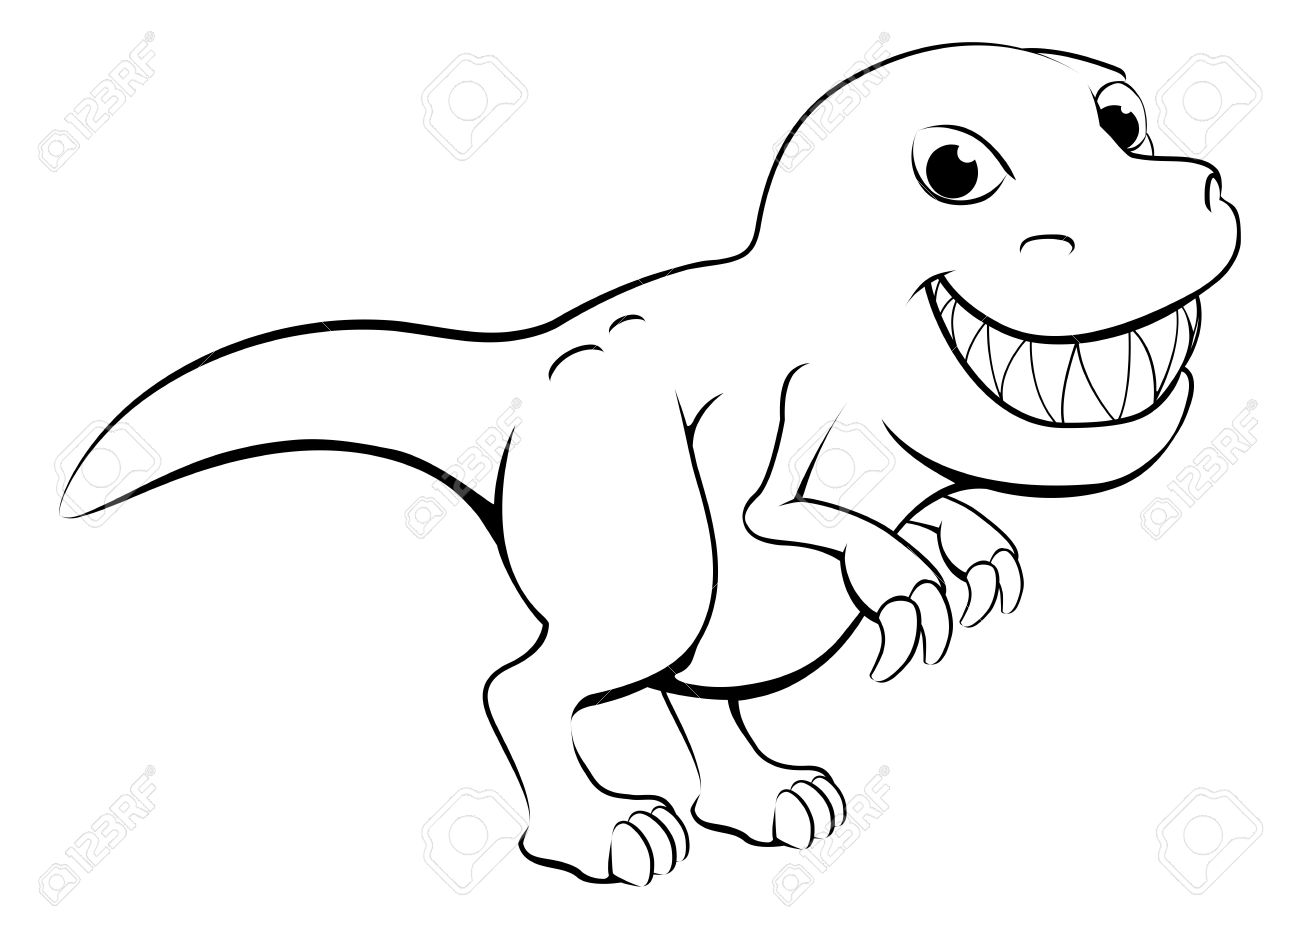 Black and white station. Trex clipart outline